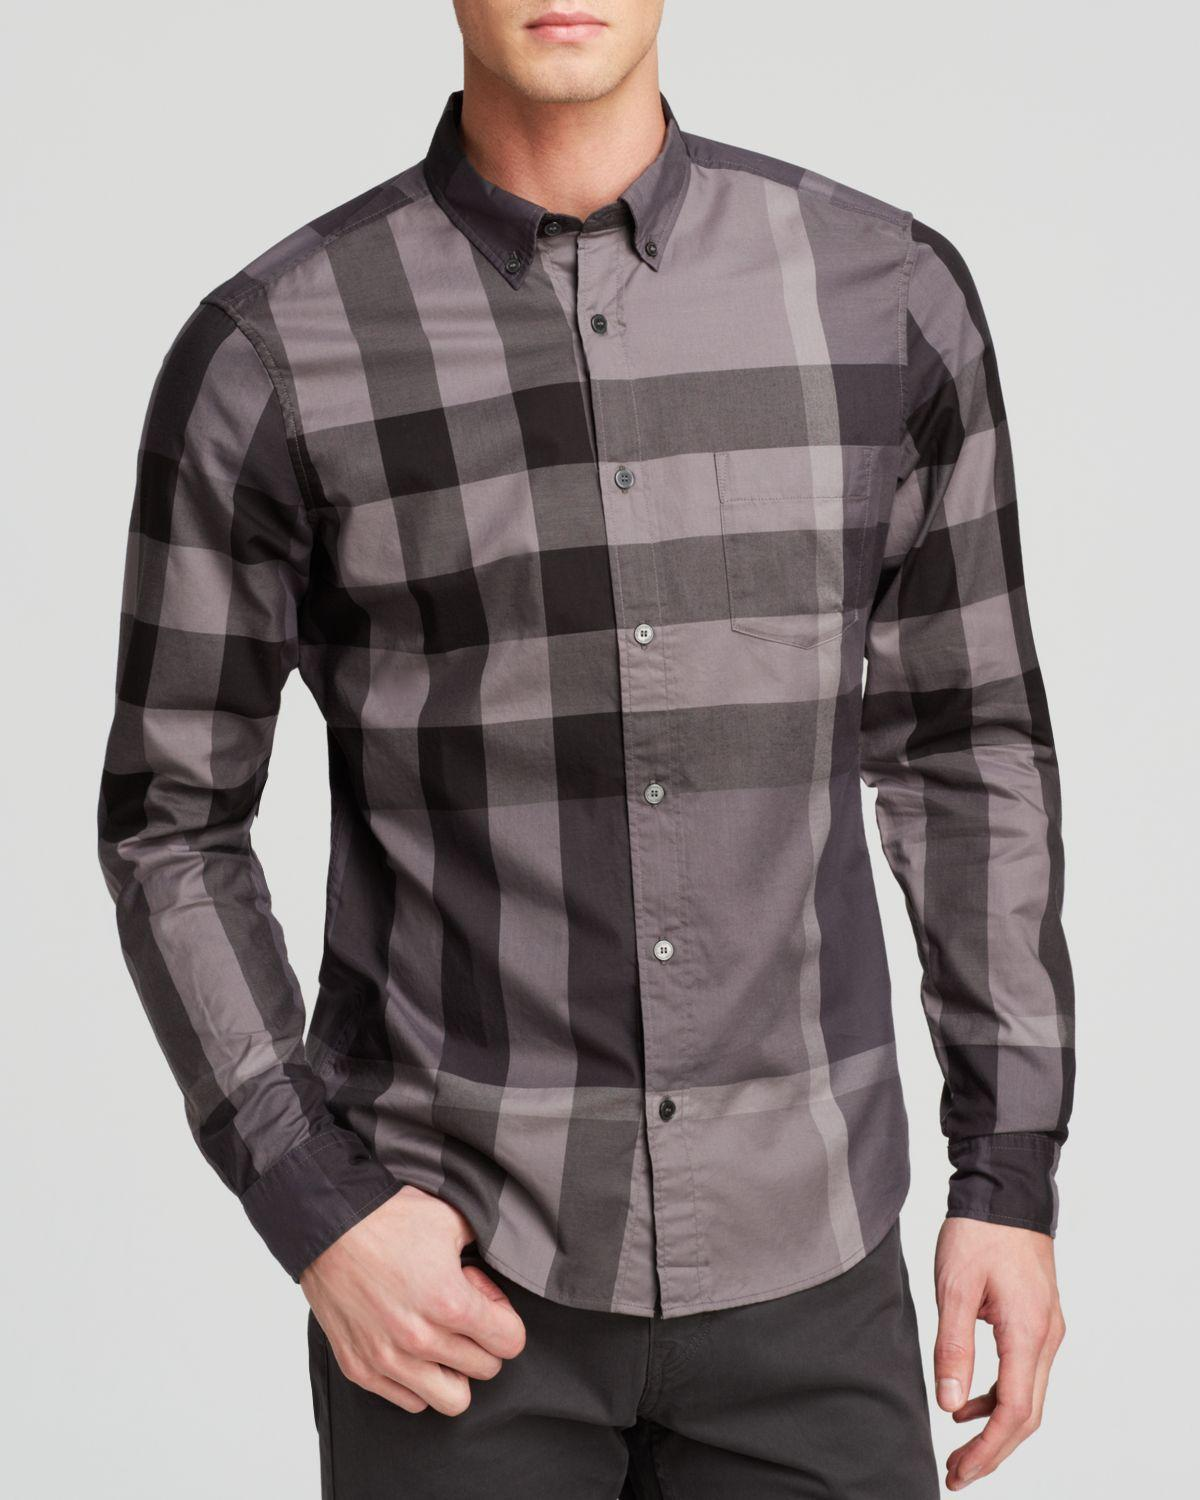 Burberry Fred Check Slim Fit Button Down Shirt In Gray For